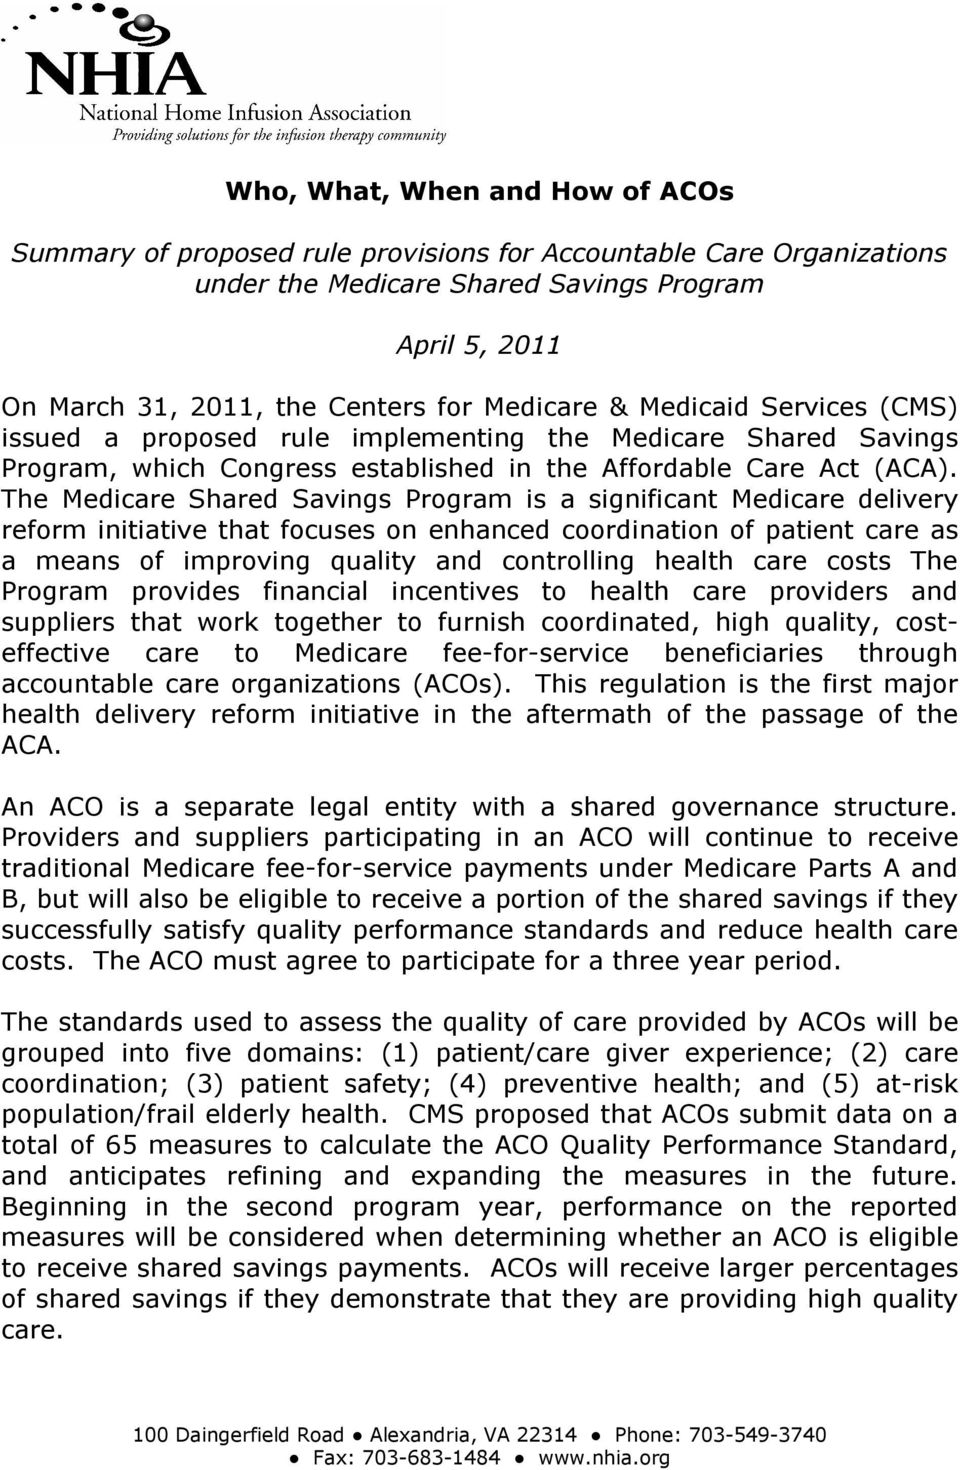 The Medicare Shared Savings Program is a significant Medicare delivery reform initiative that focuses on enhanced coordination of patient care as a means of improving quality and controlling health